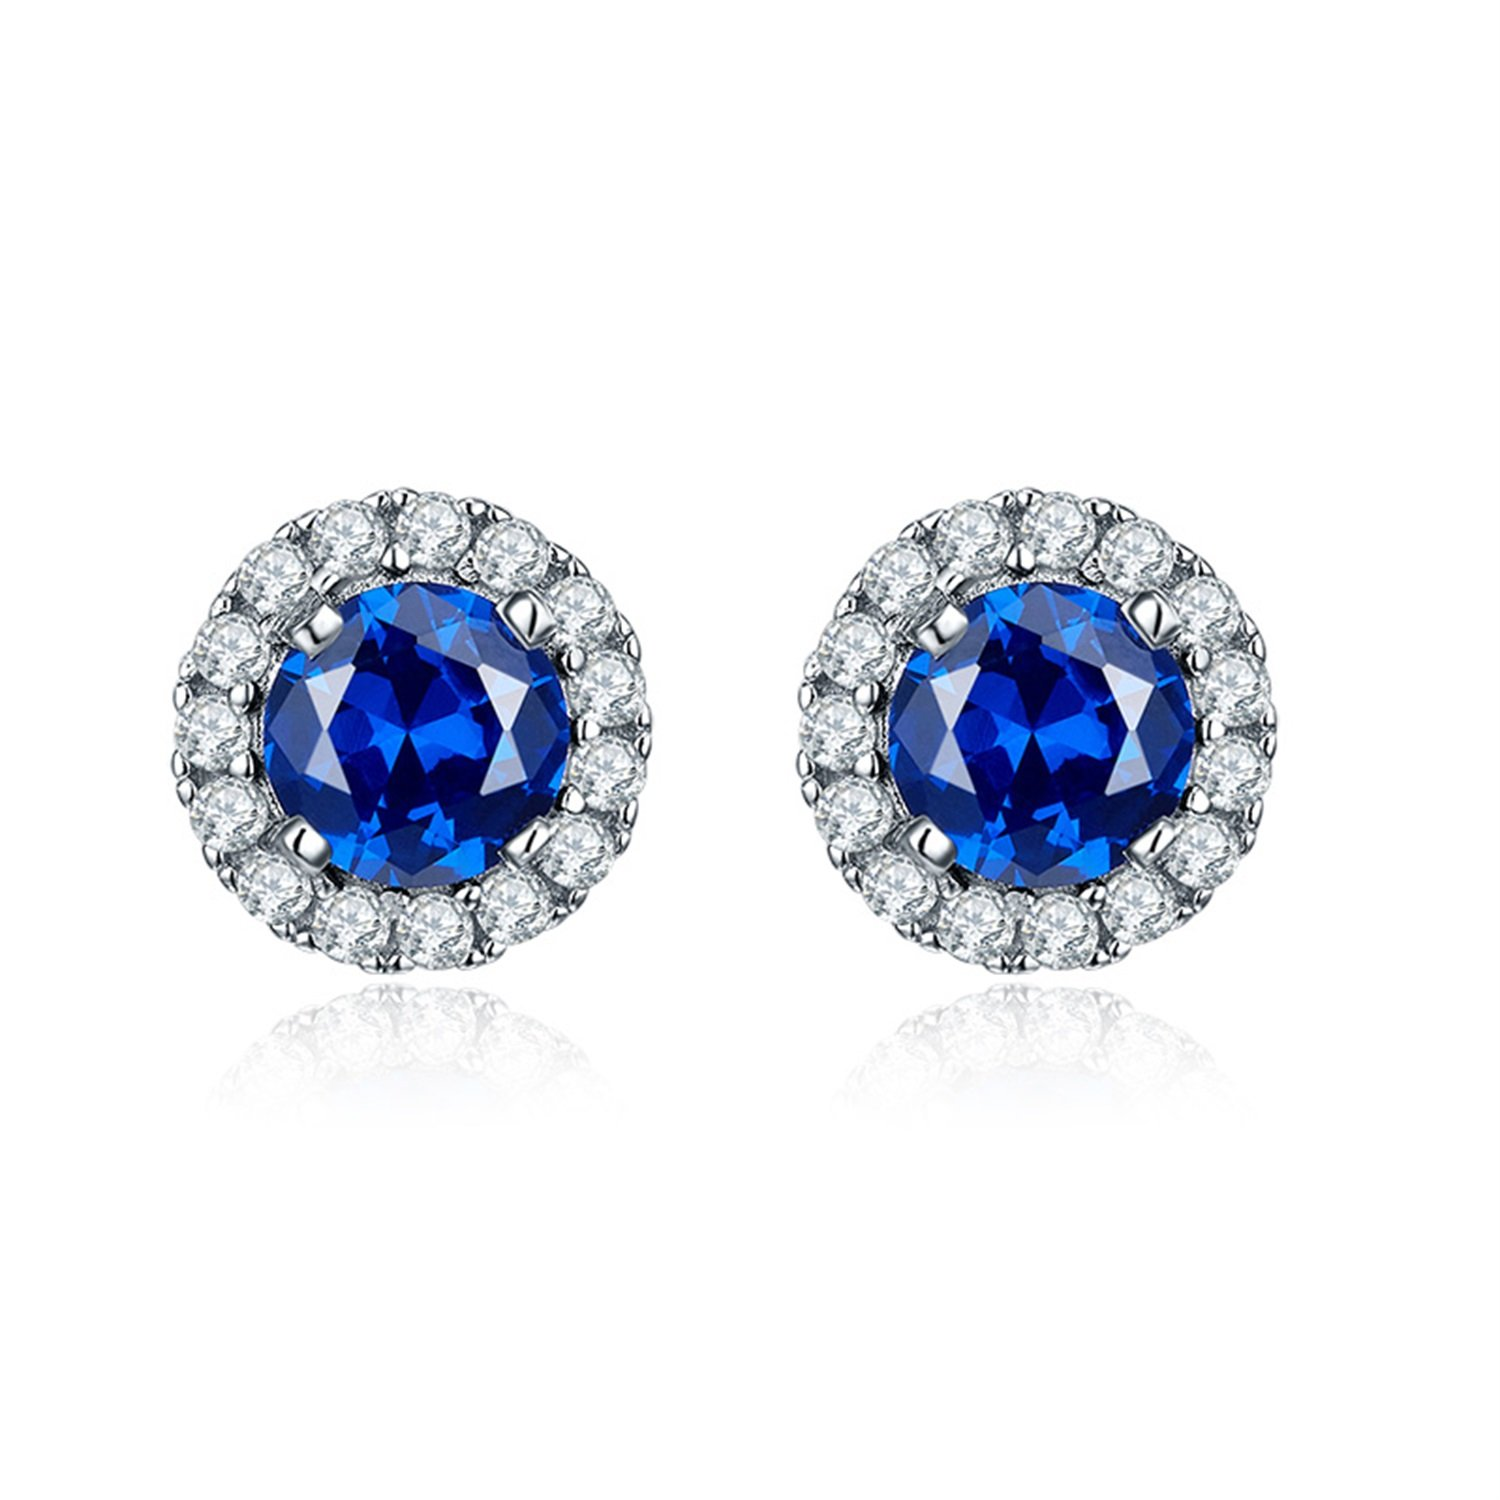 JO WISDOM 925 Sterling Silver Round Gemstone and Blue Created Sapphire Halo Stud Earrings by JO WISDOM (Image #3)